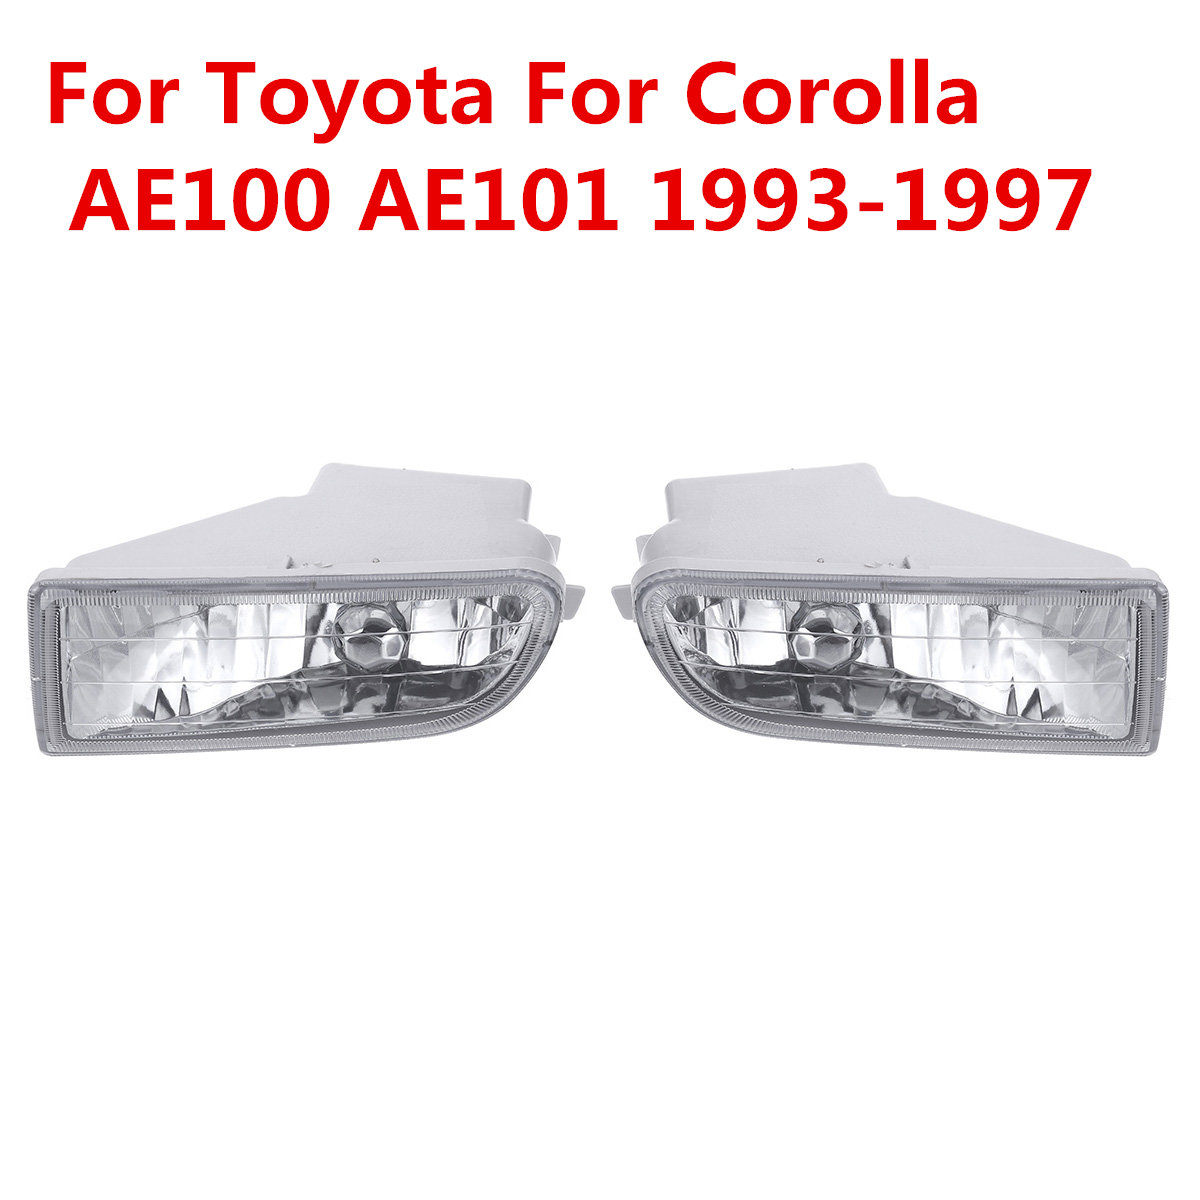 New 2x Car Stying Front Fog Light LED Fog Lamp LED For <font><b>Toyota</b></font> For <font><b>Corolla</b></font> AE100 <font><b>AE101</b></font> 1993-1997 A1649060451 image